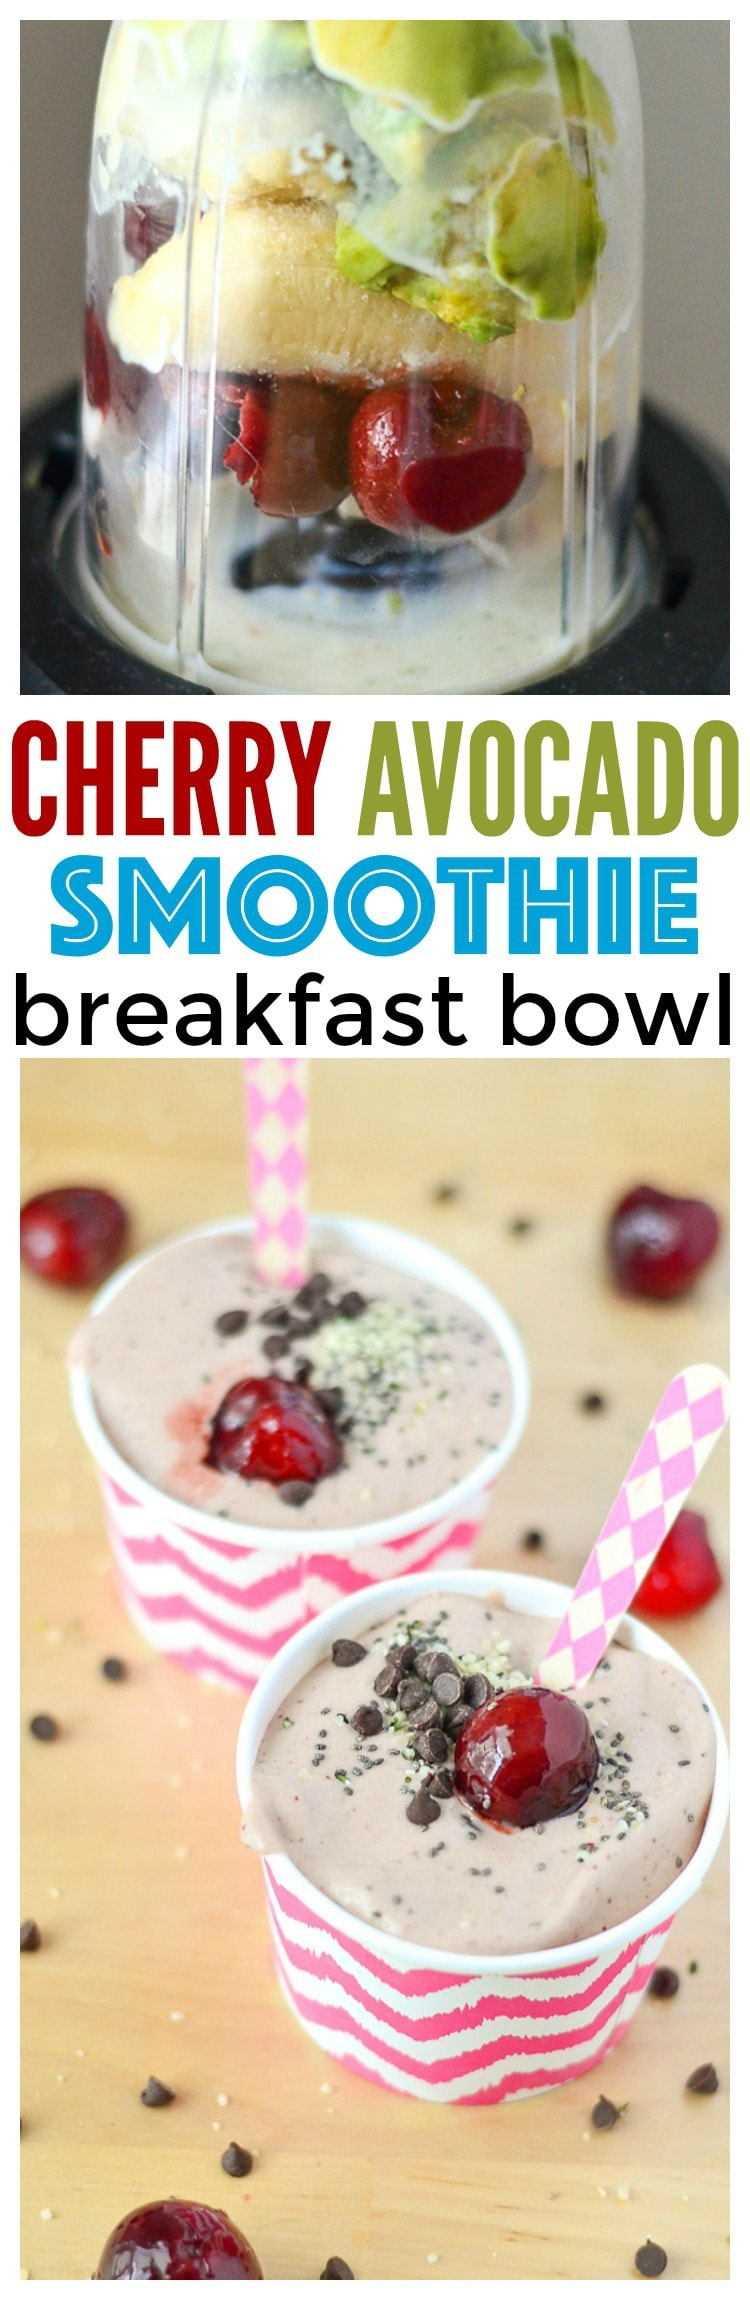 Cherry Avocado Smoothie Bowl Breakfast that is healthy Cherry Smoothie Smoothie recipes healthy Mini Chef Mondays Kid Friendly Food Recipes